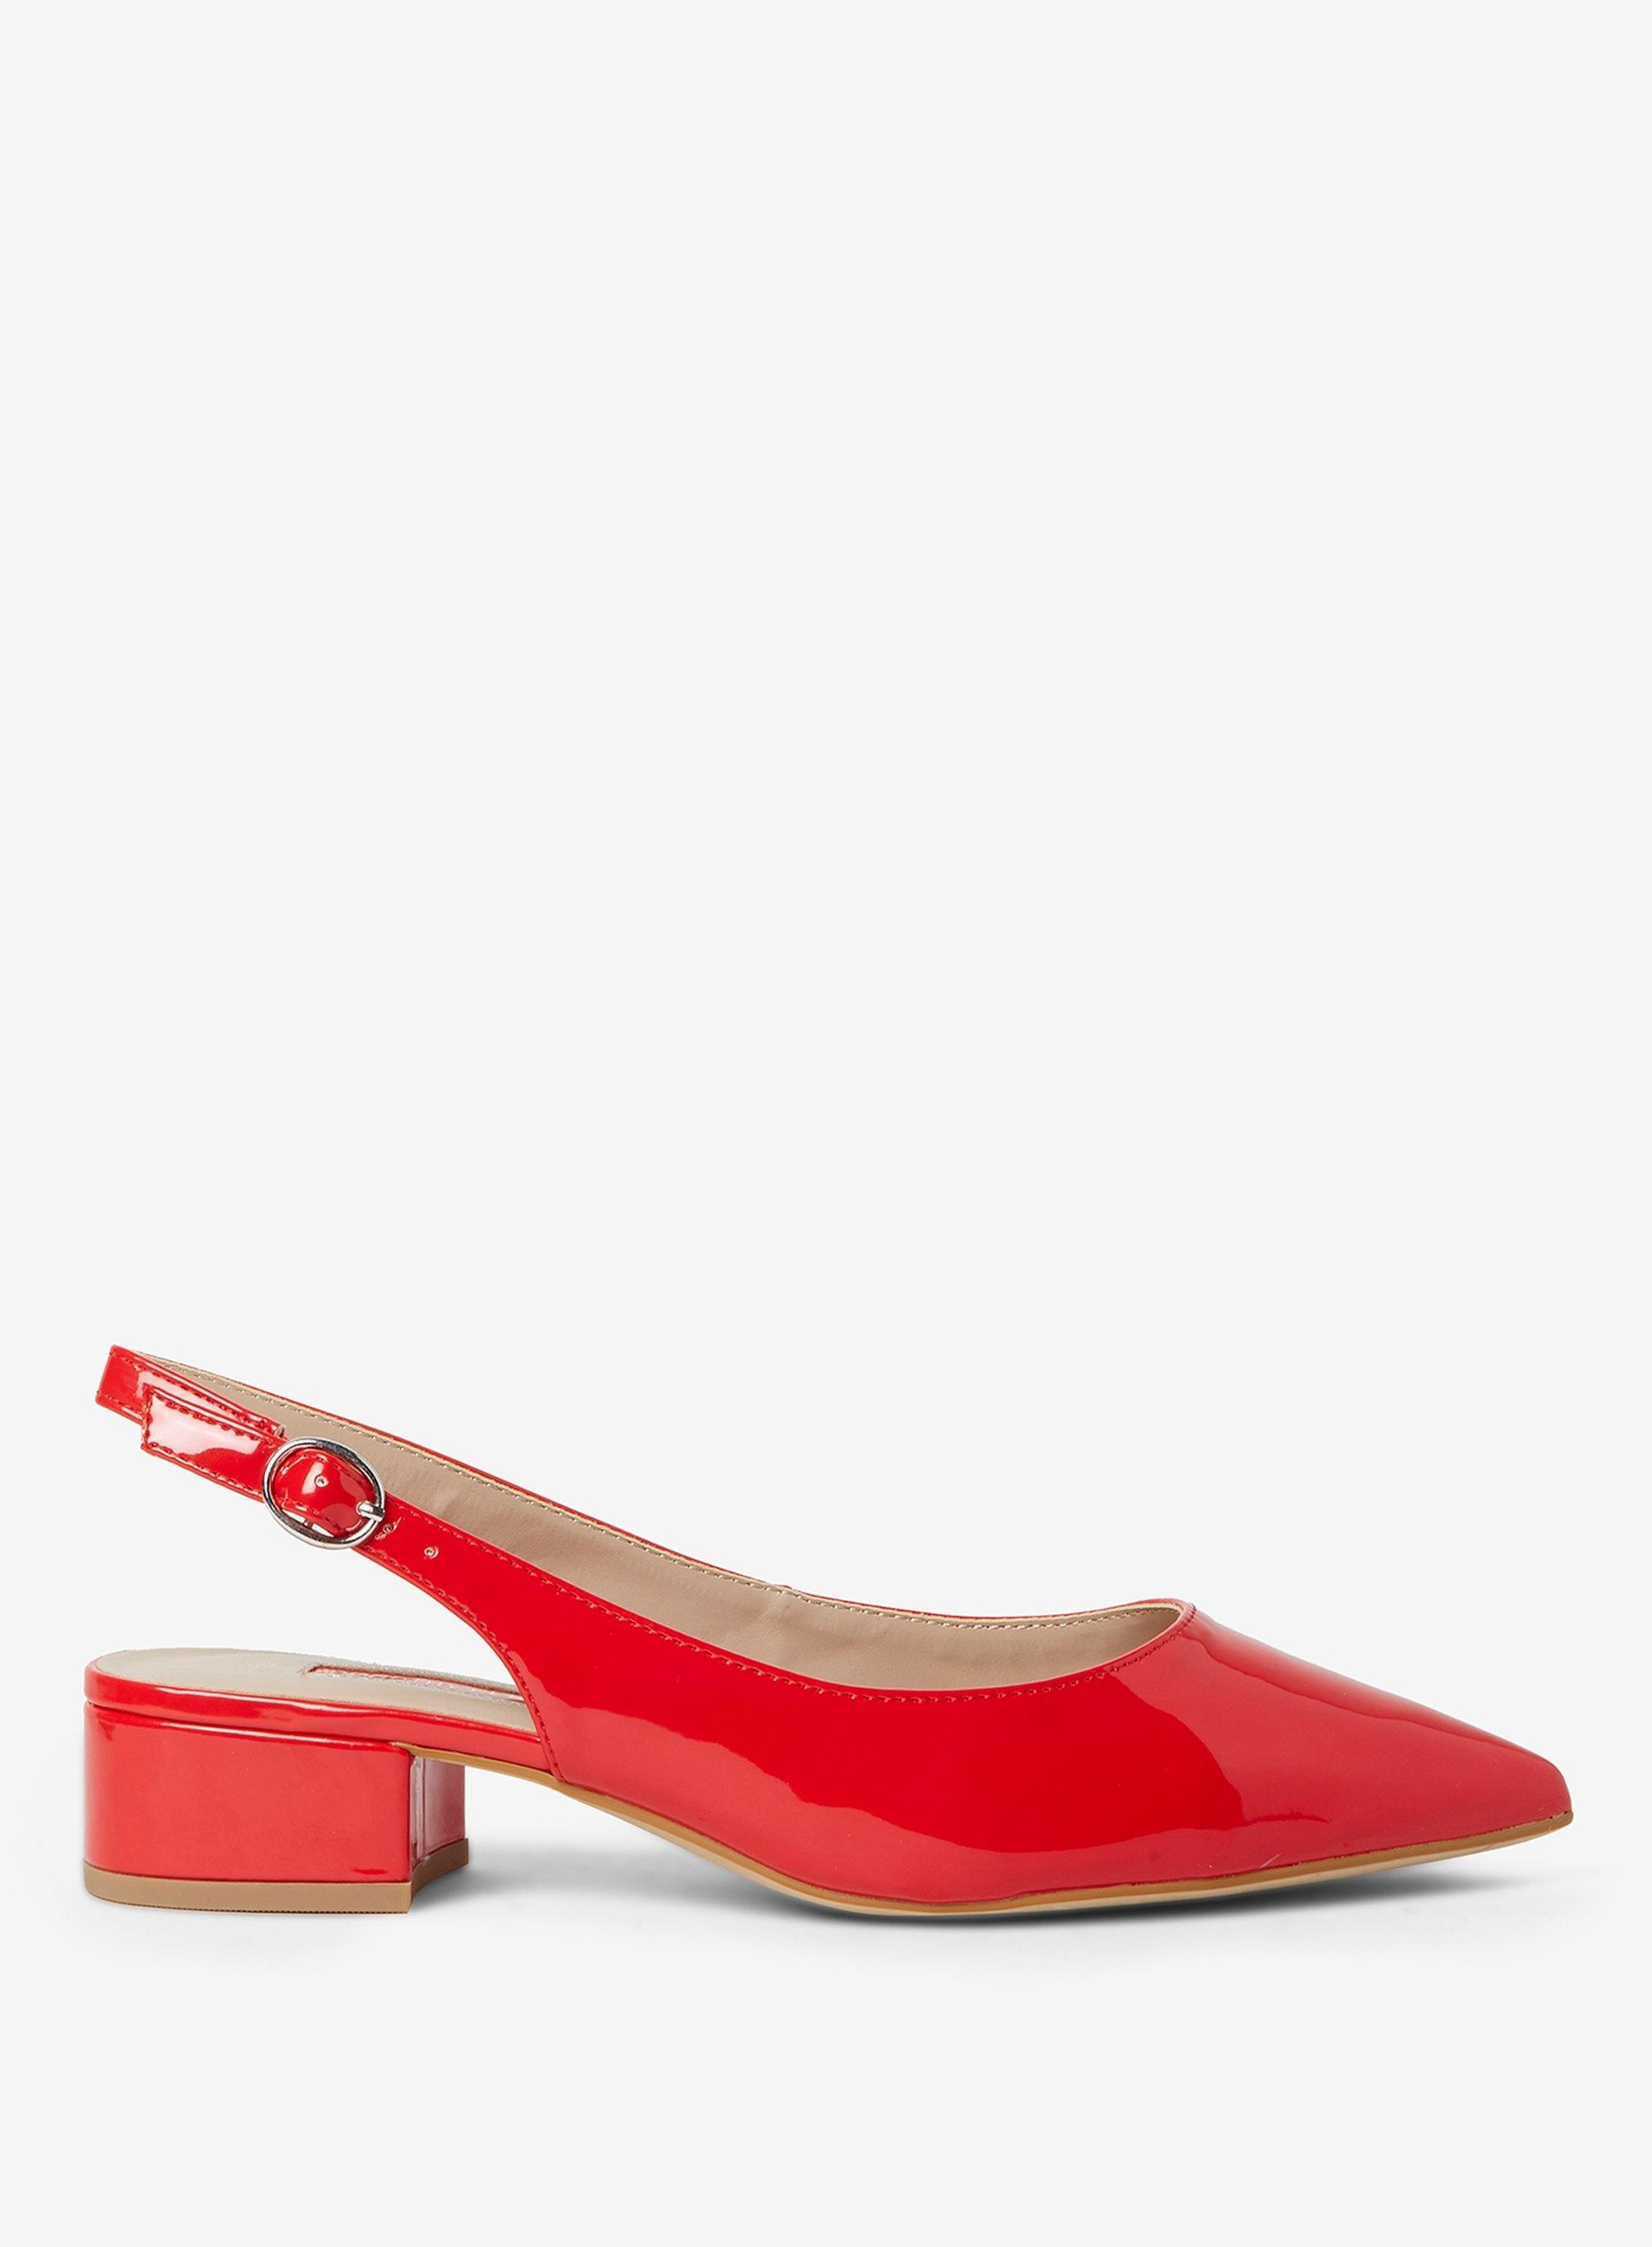 3979e21697 Lyst - Dorothy Perkins Red 'daphne' Block Heel Court Shoes in Red